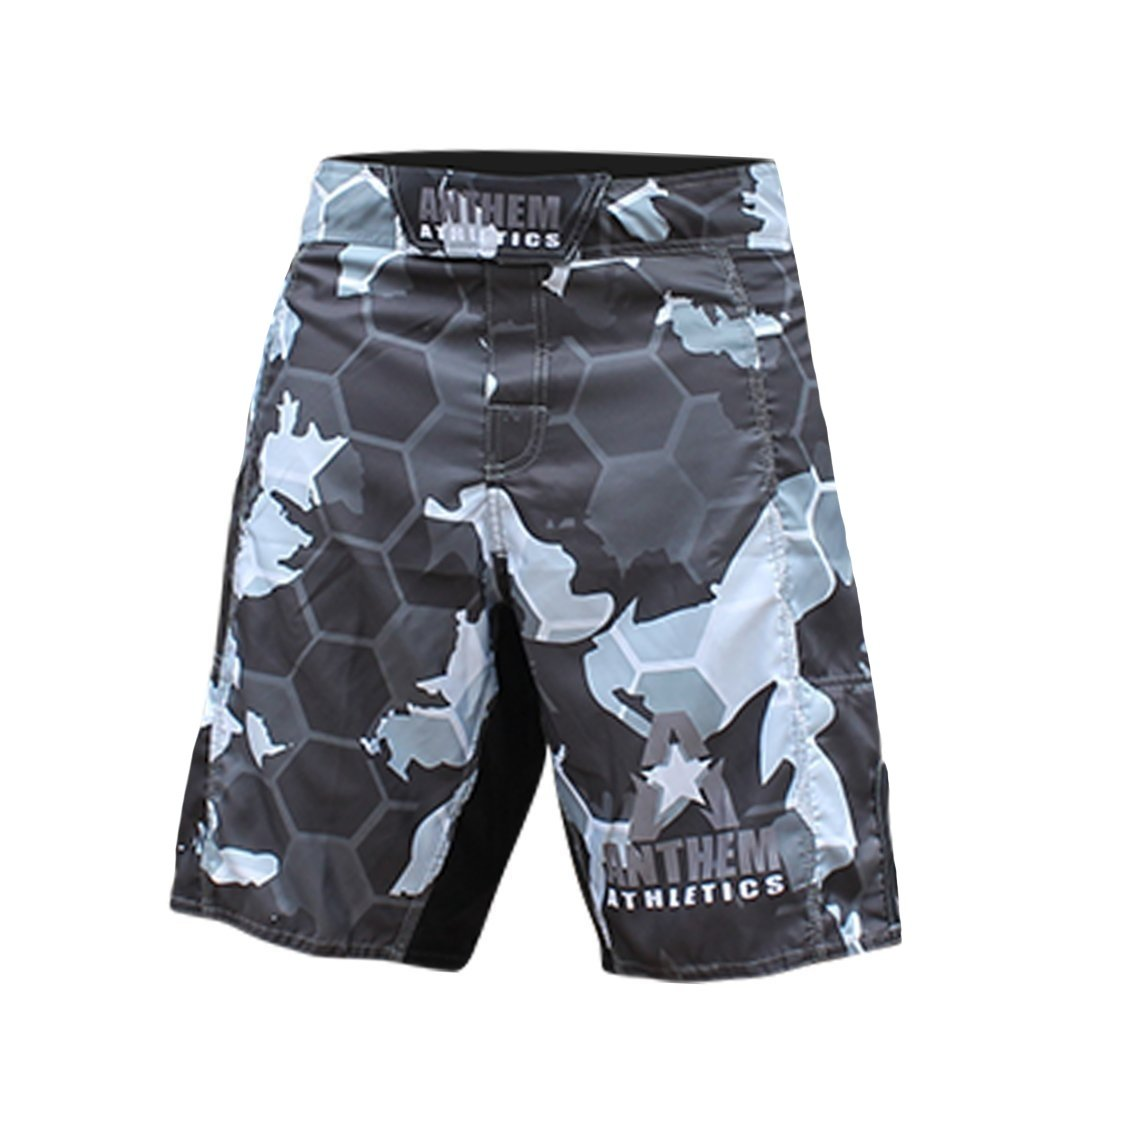 Anthem Athletics RESILIENCE MMA Shorts - Snow Camo Hex - 35'' by Anthem Athletics